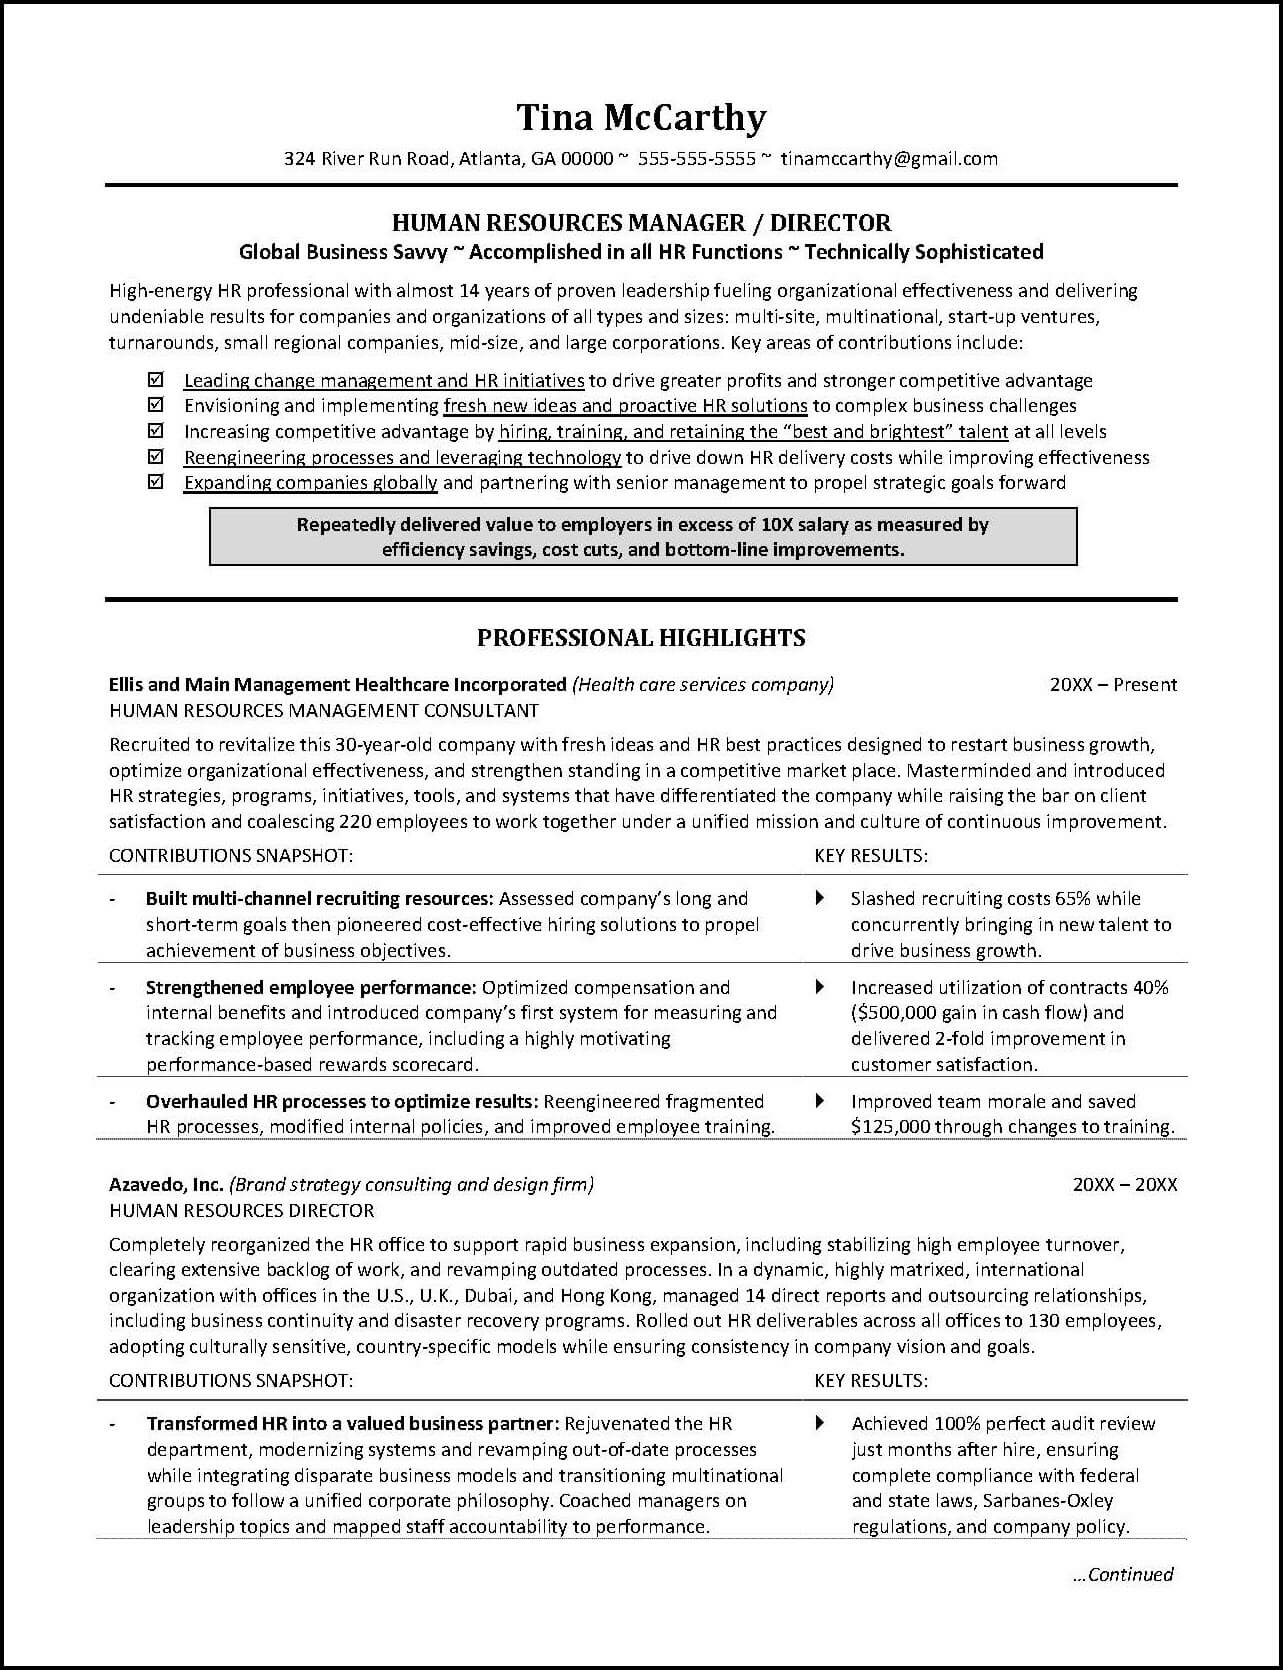 Human Resources Resume Page 1  Human Resource Management Resume